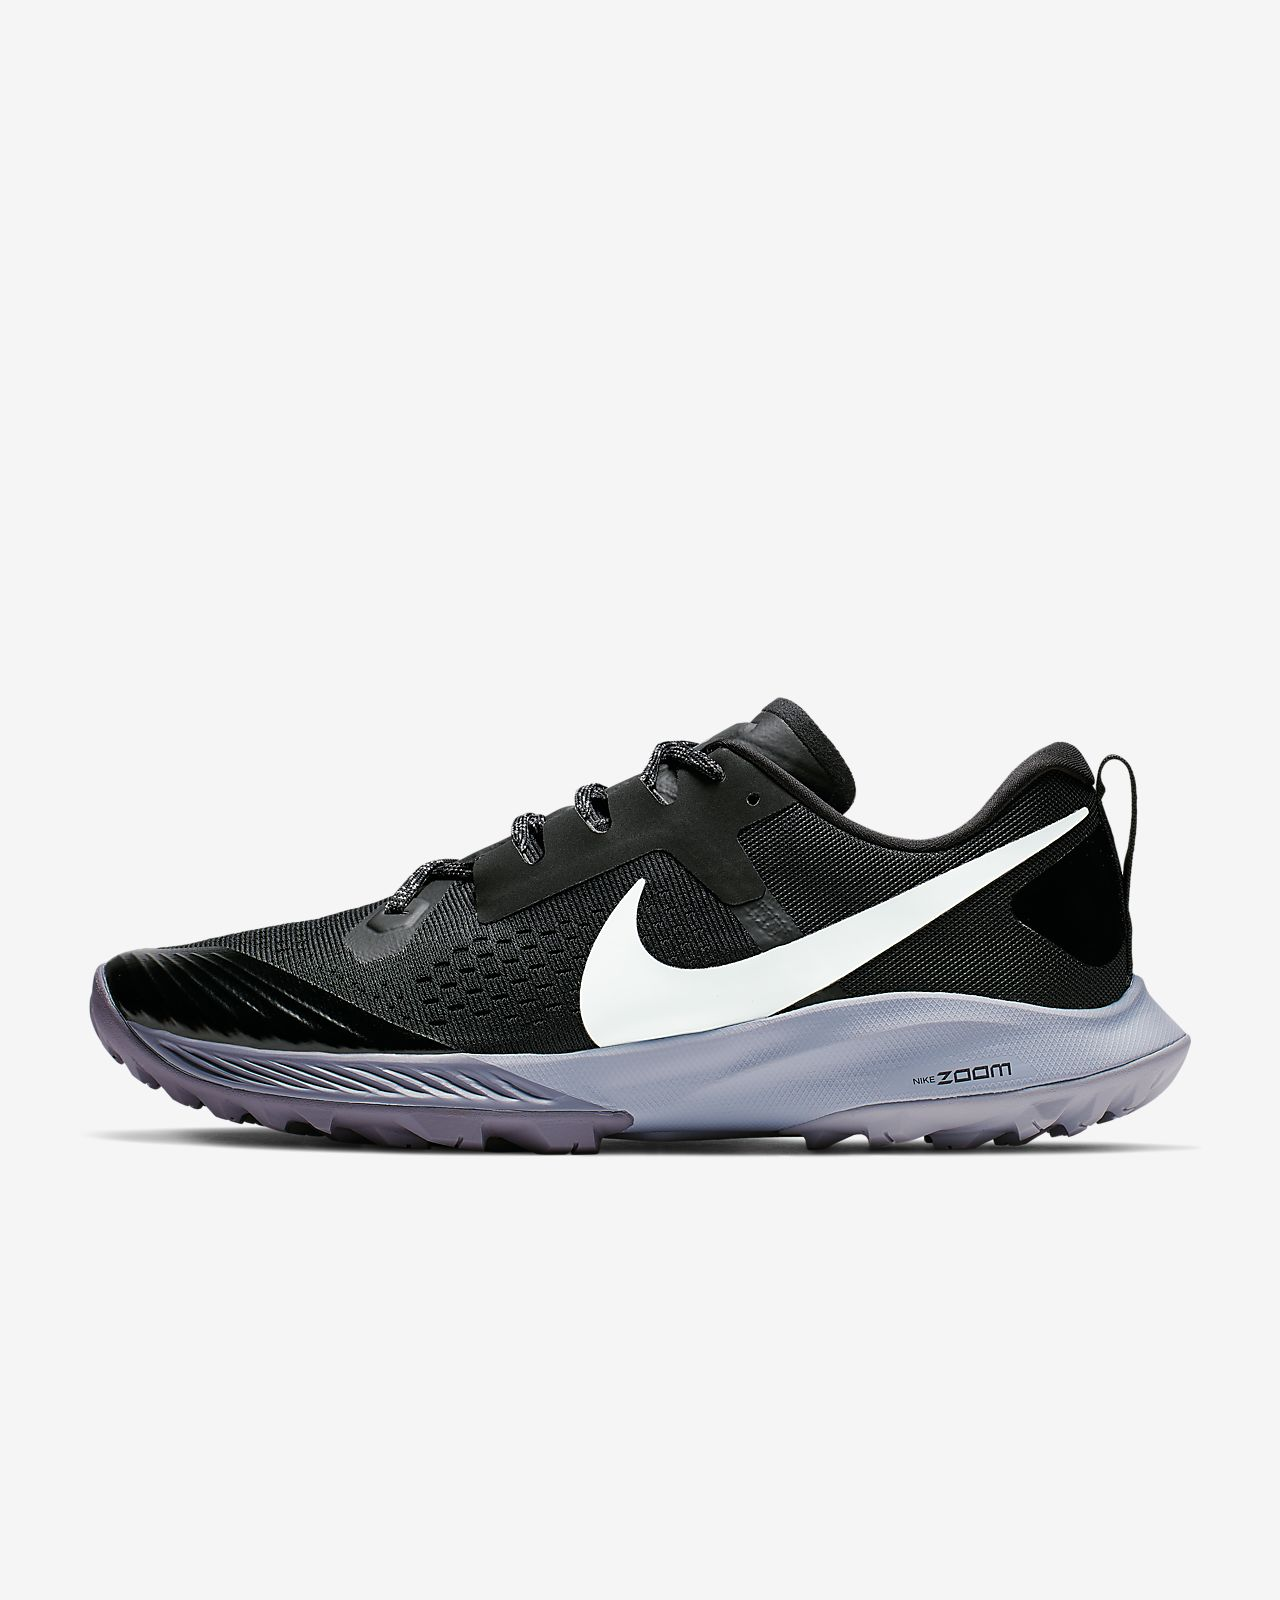 e6747f85cf0 Nike Air Zoom Terra Kiger 5 Men s Running Shoe. Nike.com